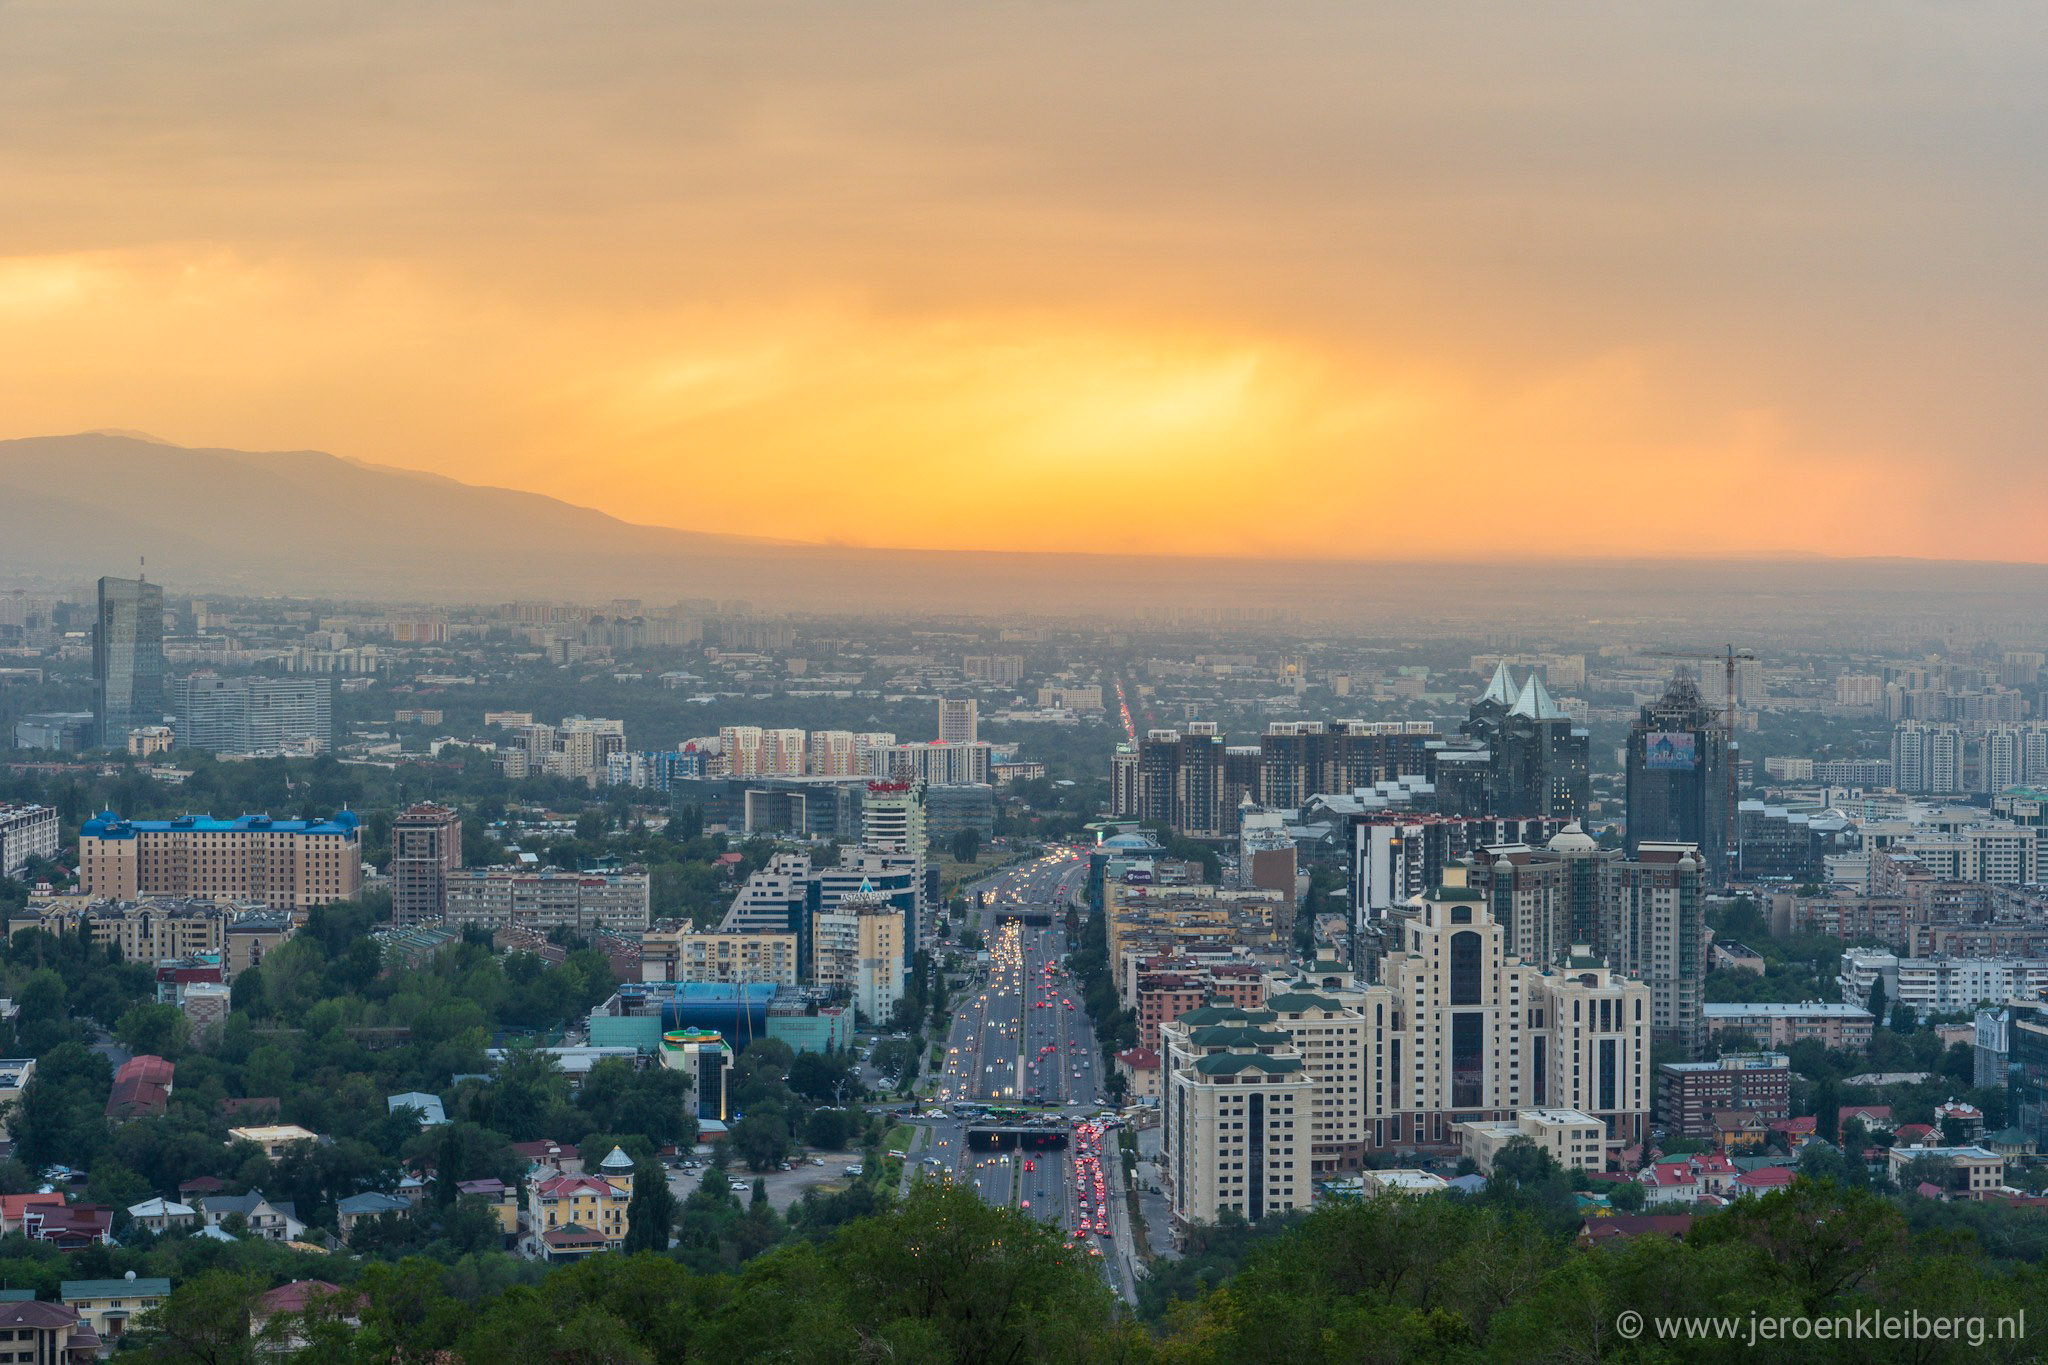 An orange sun lights the evening sky above Almaty